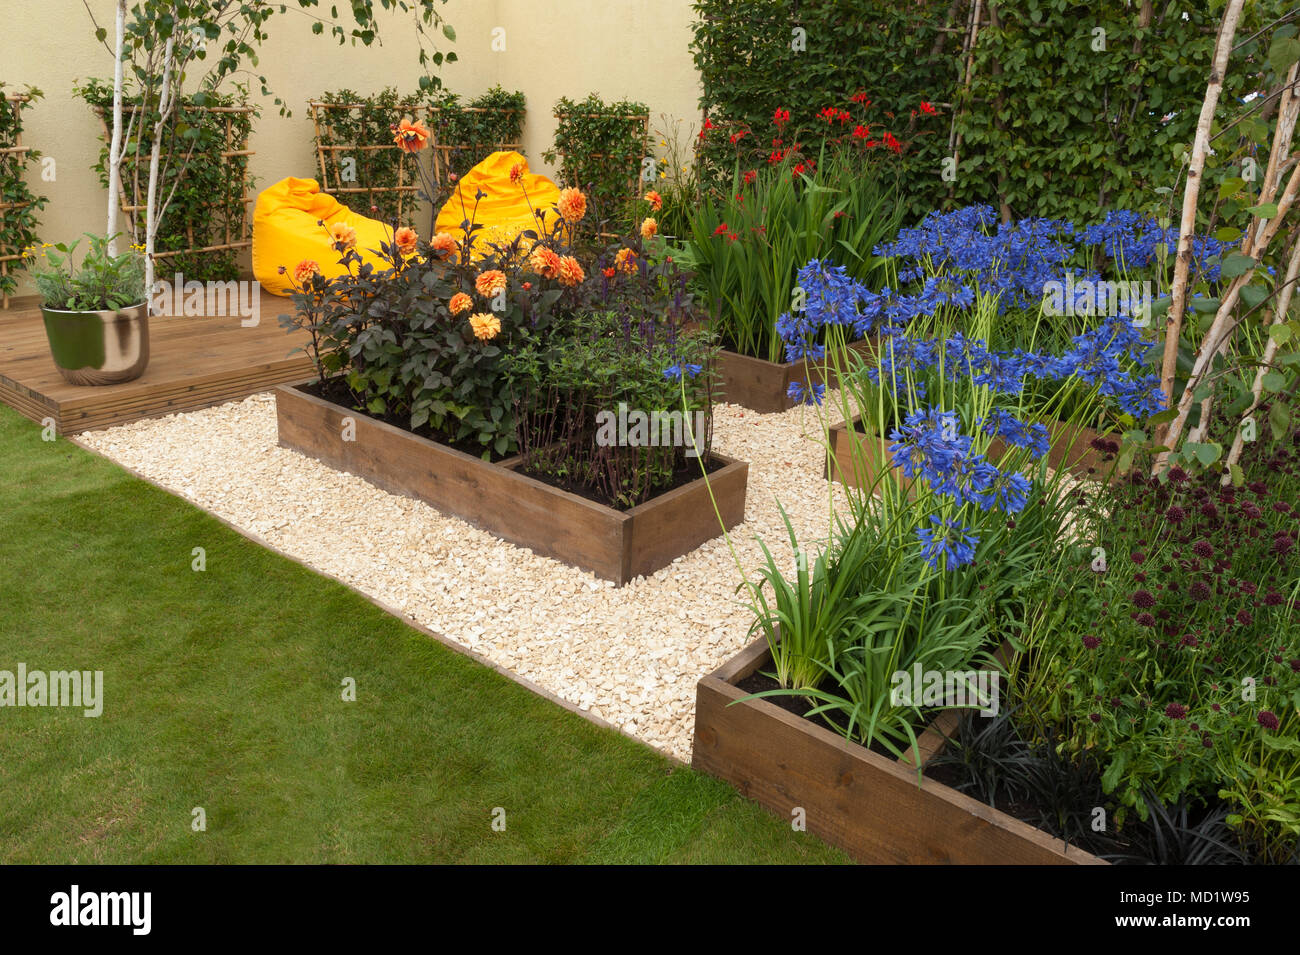 Bright colourful flowering plants in timber beds & yellow beanbag chairs on decking - 'The Journey Garden' - RHS Flower Show, Tatton Park, England, UK - Stock Image